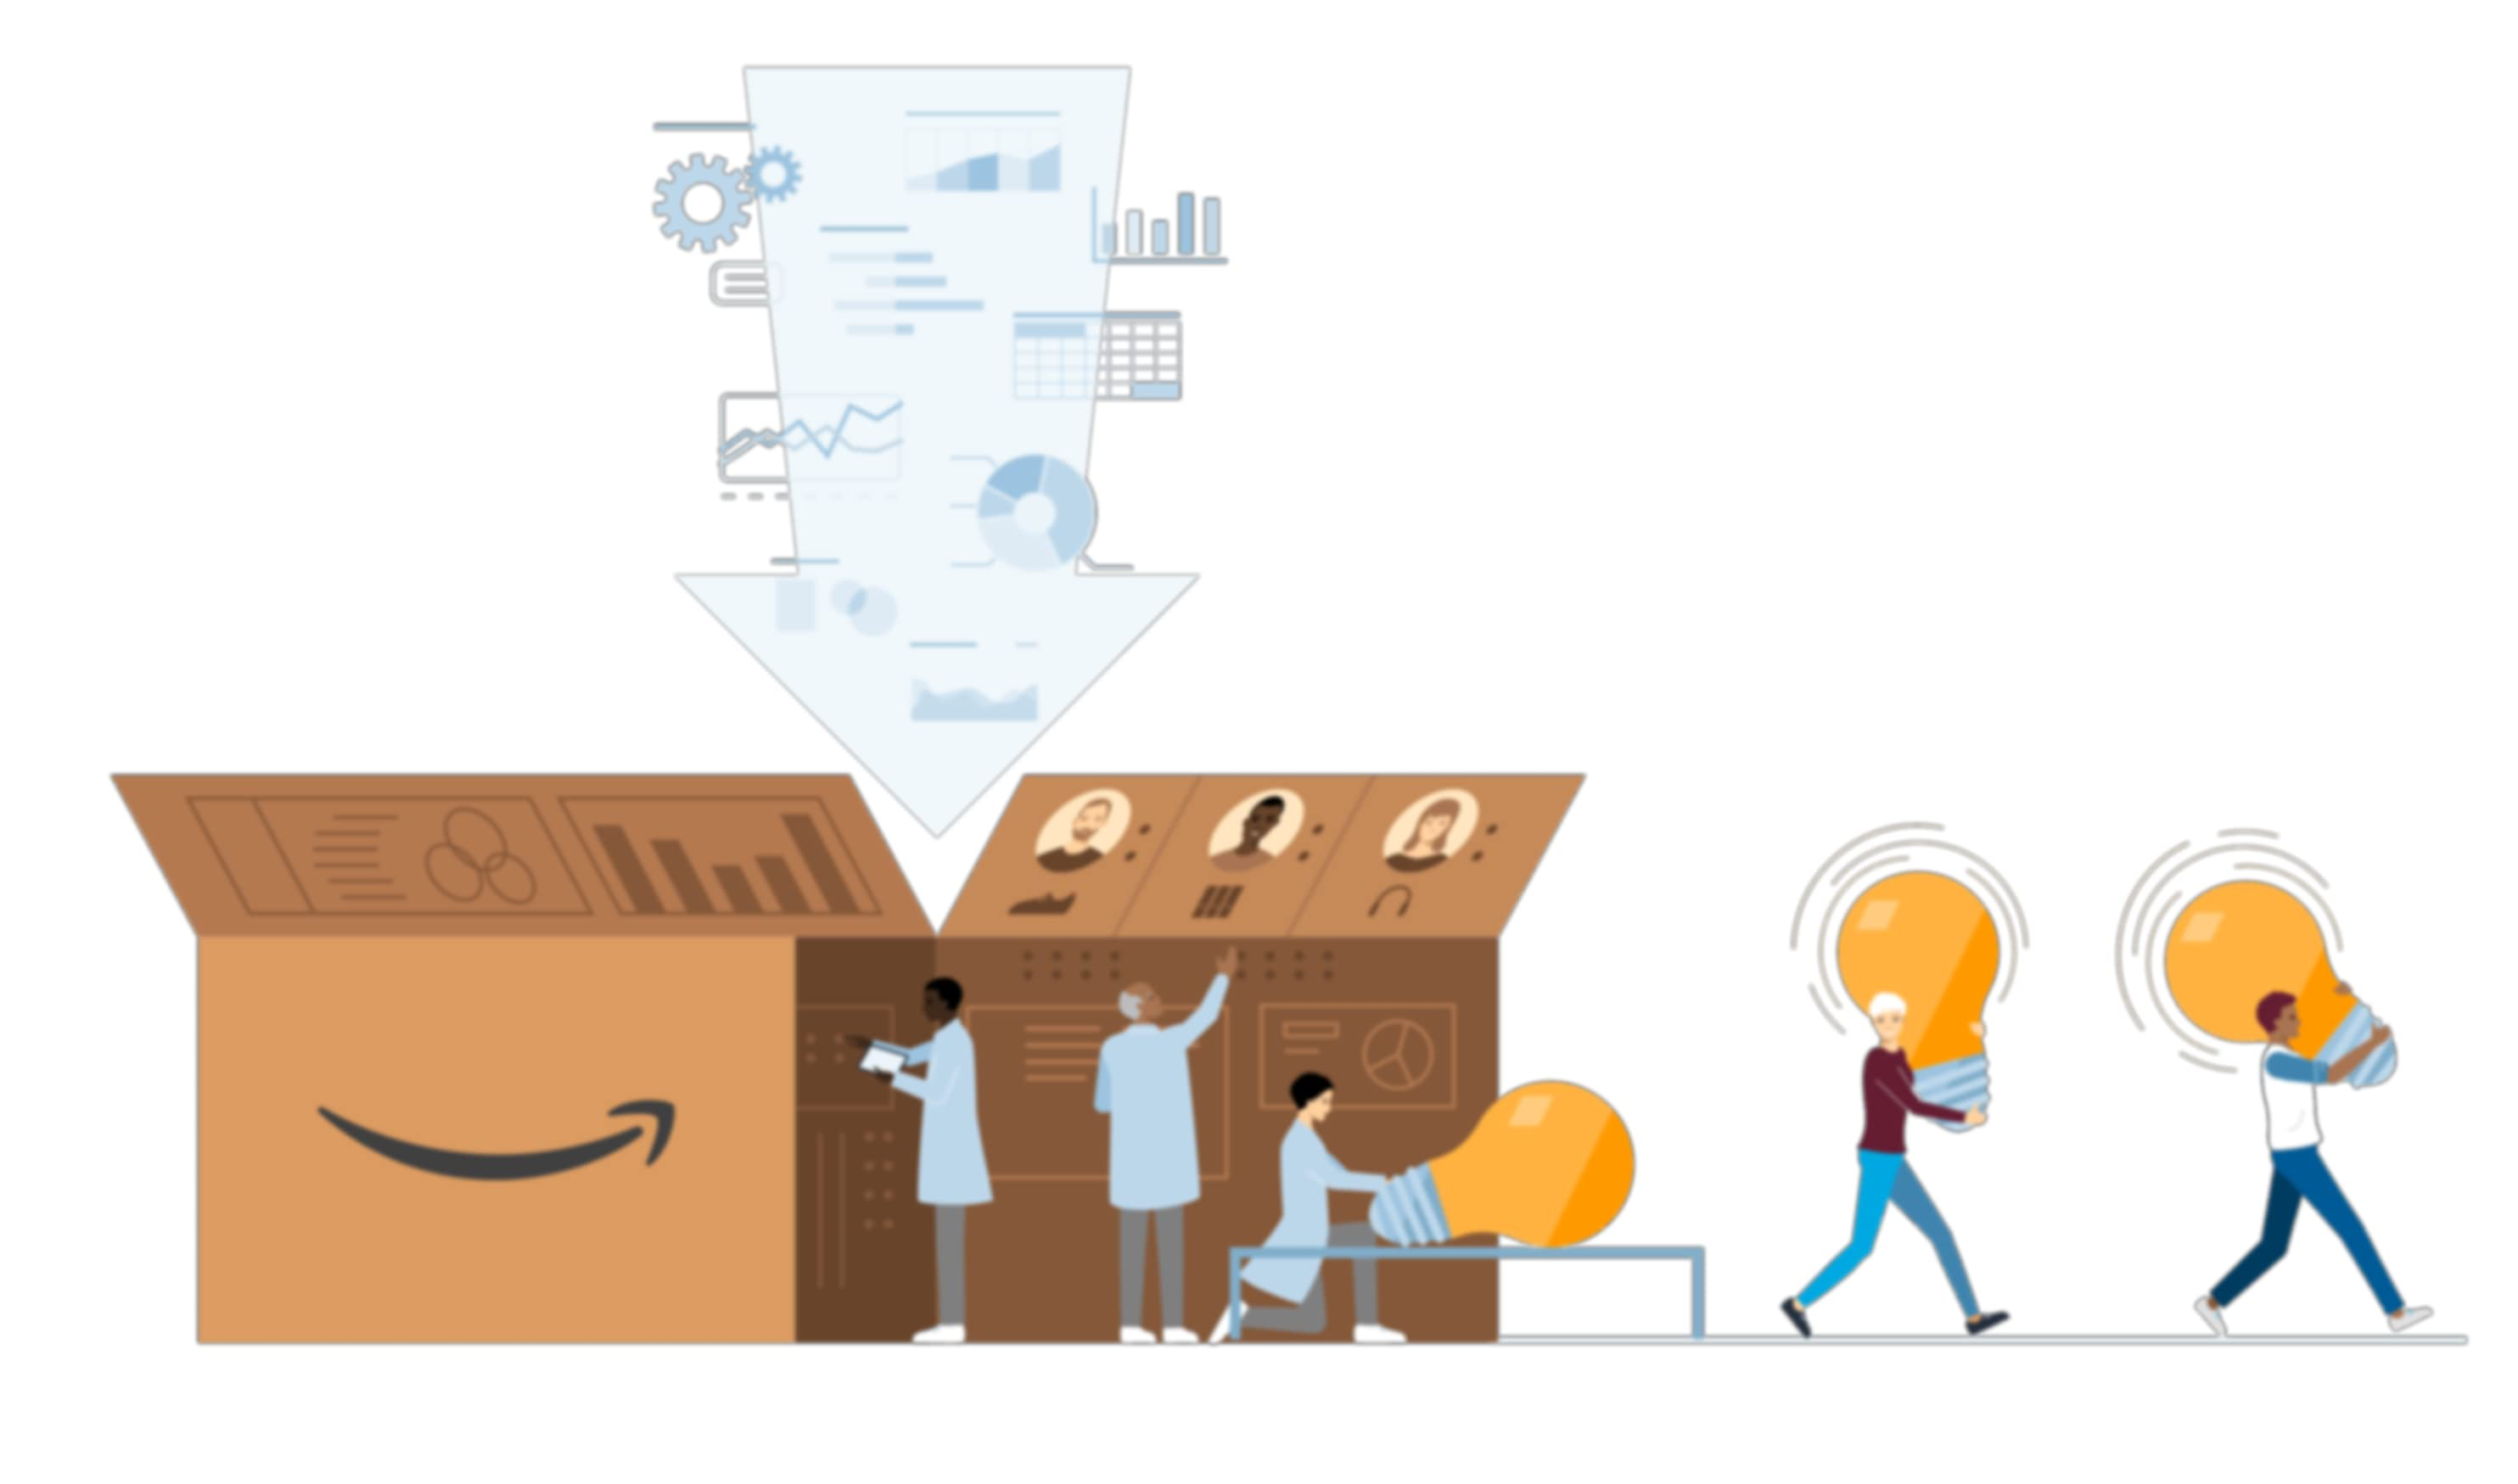 Illustration of workers carrying lightbulbs out of box